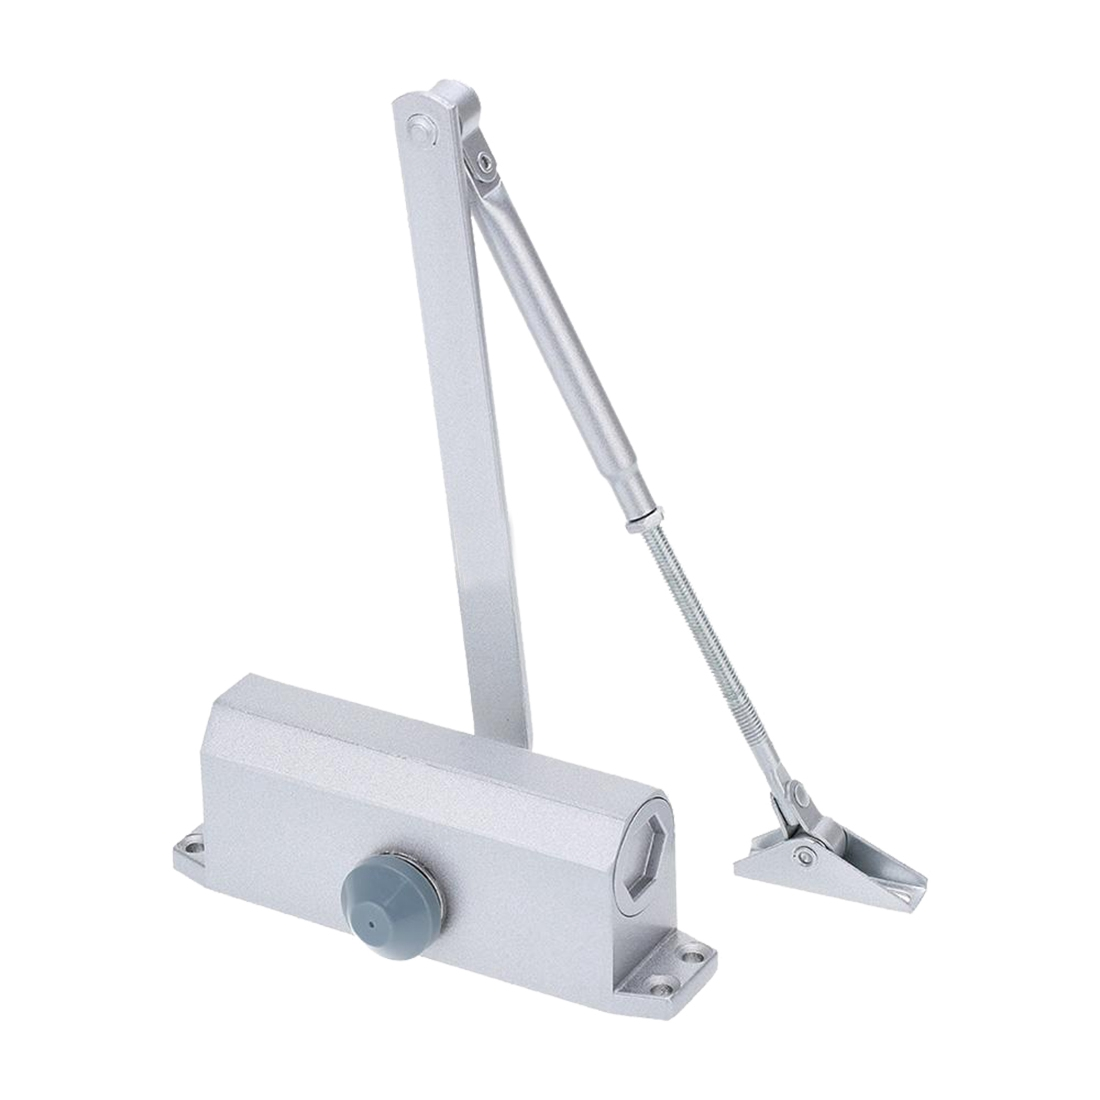 45-65KG Automatic Heavy Duty FIRE RATED Door Closer 45 65kg automatic heavy duty fire rated door closer 90 degrees door closer spring automatic door closer for home & garden